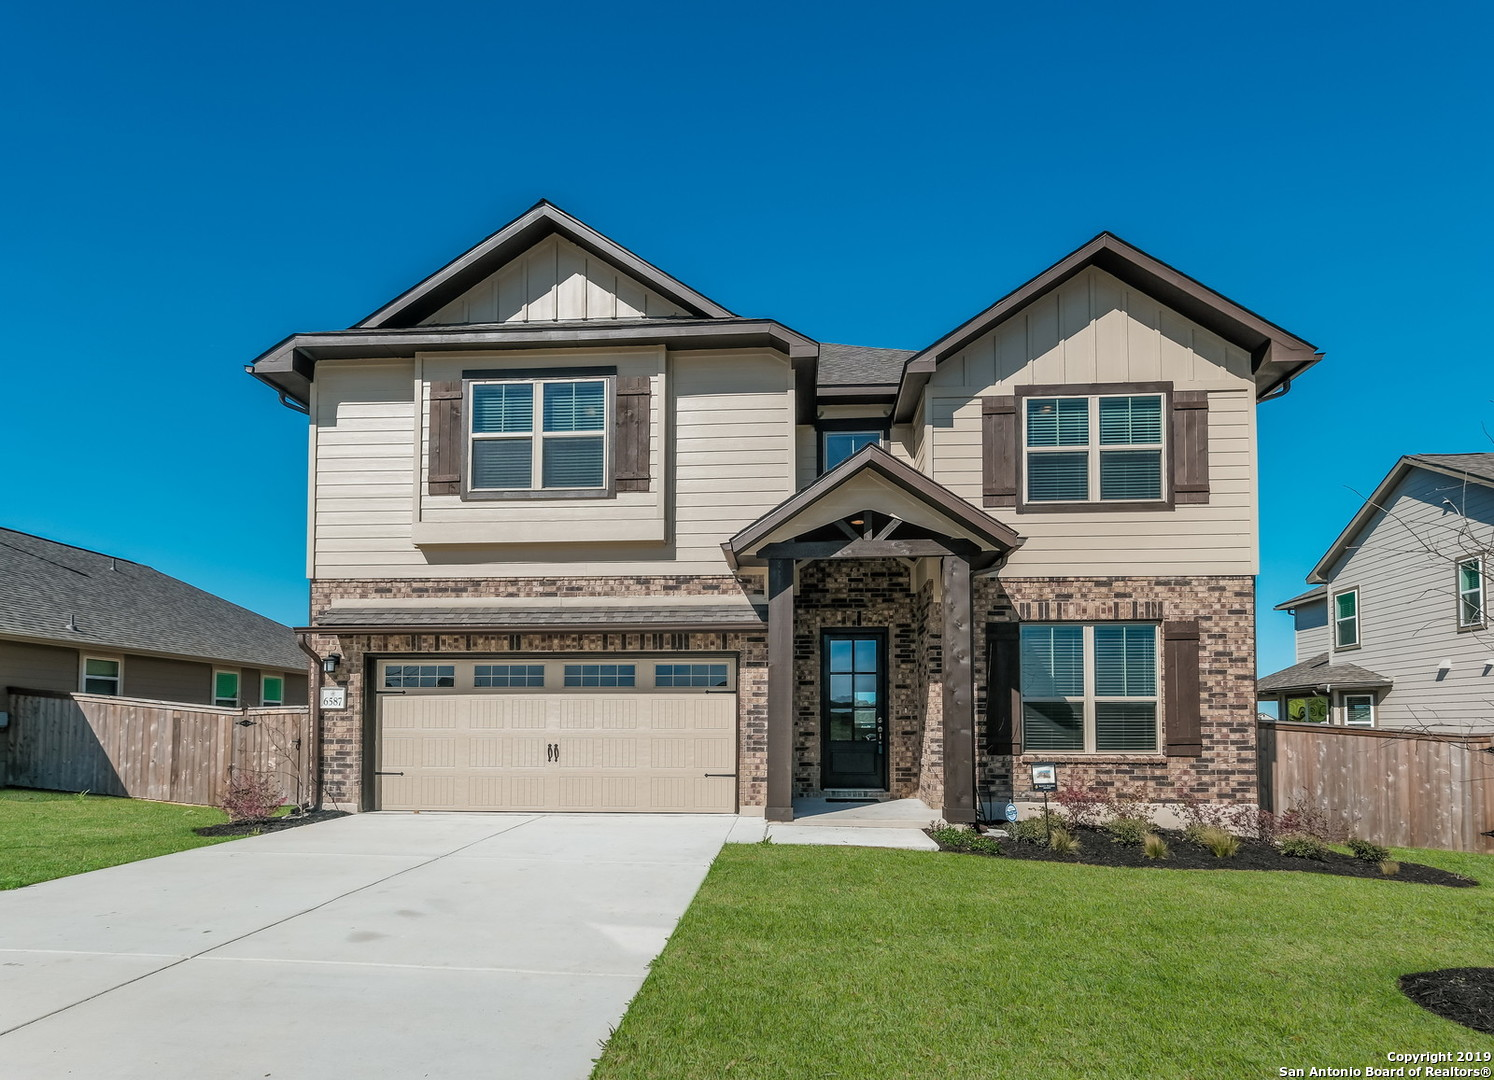 6587-mason-valley-schertz-tx-78108